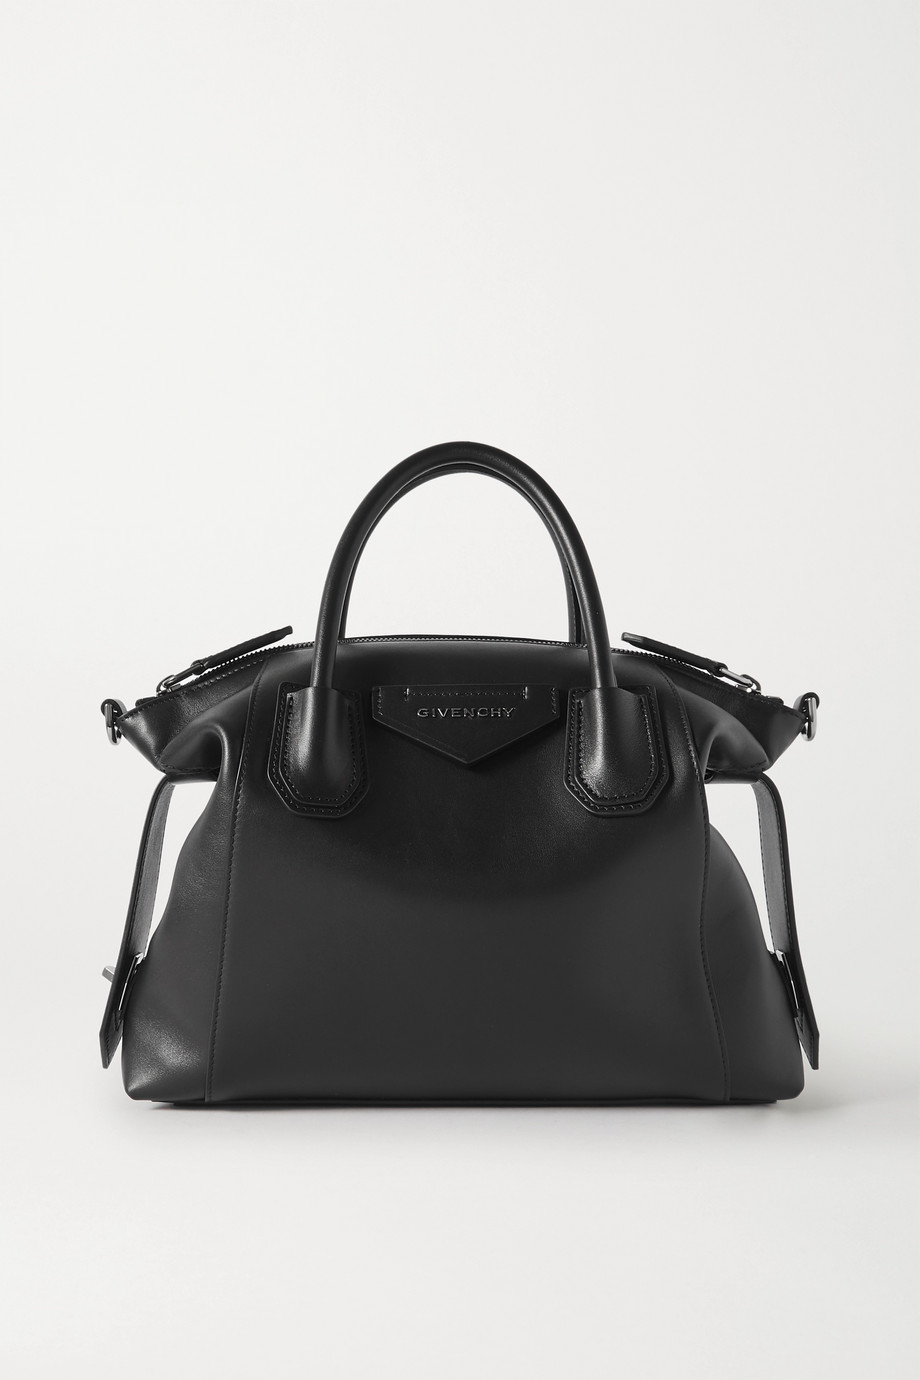 Givenchy Antigona Soft small leather tote